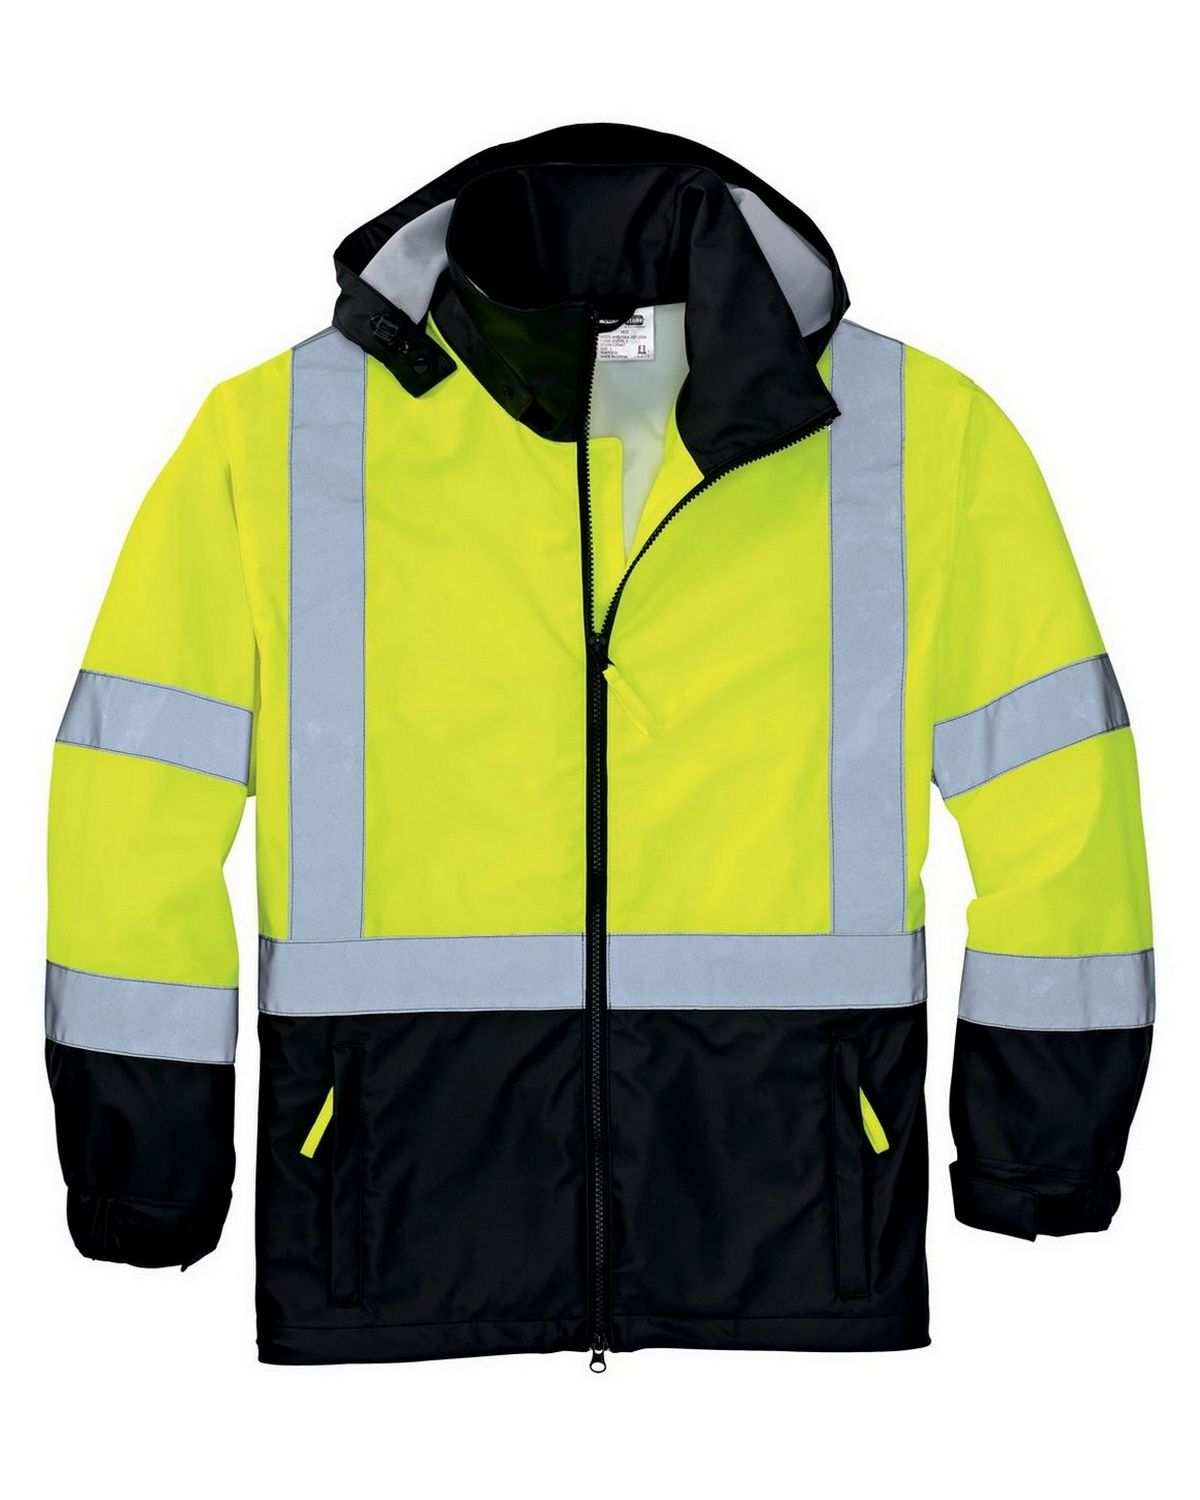 Buy Cornerstone Csj25 Ansi Class 3 Safety Windbreaker